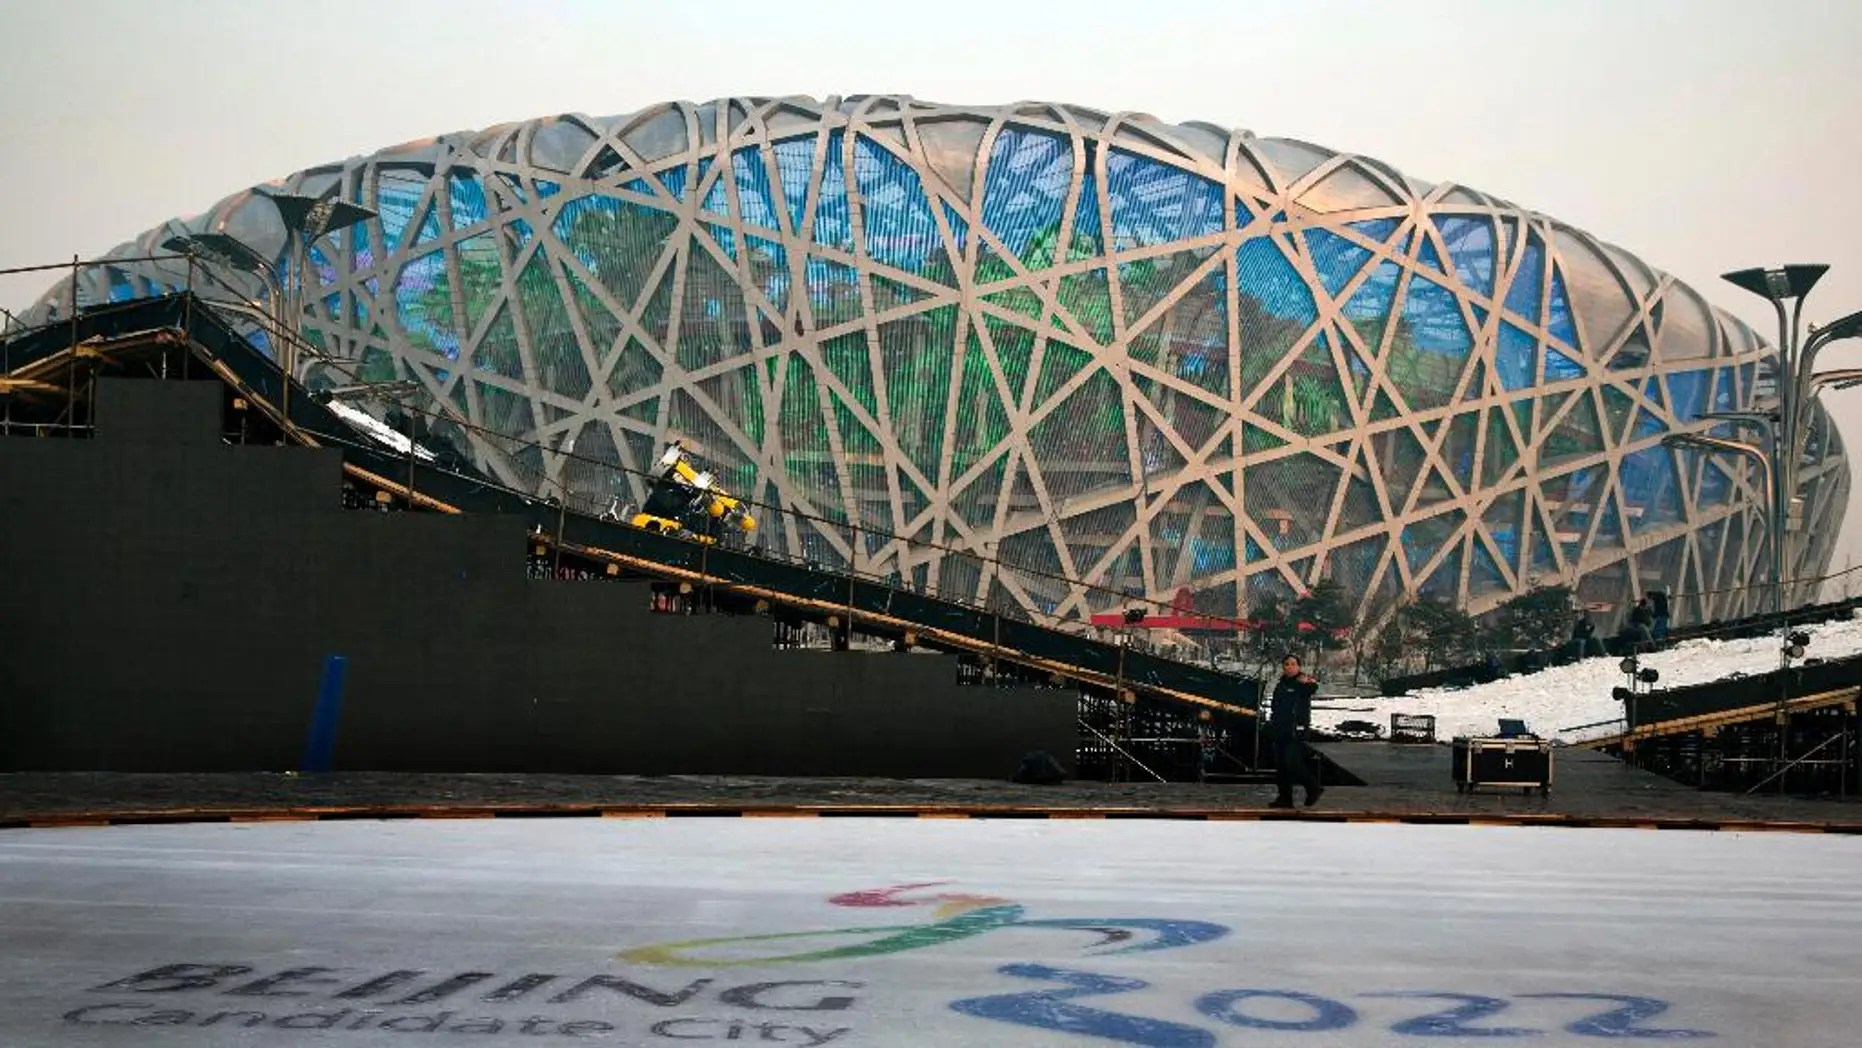 """FOR STORY OLYMPICS 2022 BID - FILE - In this Dec. 26, 2014 file photo, a worker walks past an ice rink with the logo for Beijing's Winter Olympics bid ahead of a countdown event to the new year in front of the iconic Beijing National Stadium """"Bird's Nest"""" in Beijing. (AP Photo/Ng Han Guan, File)"""